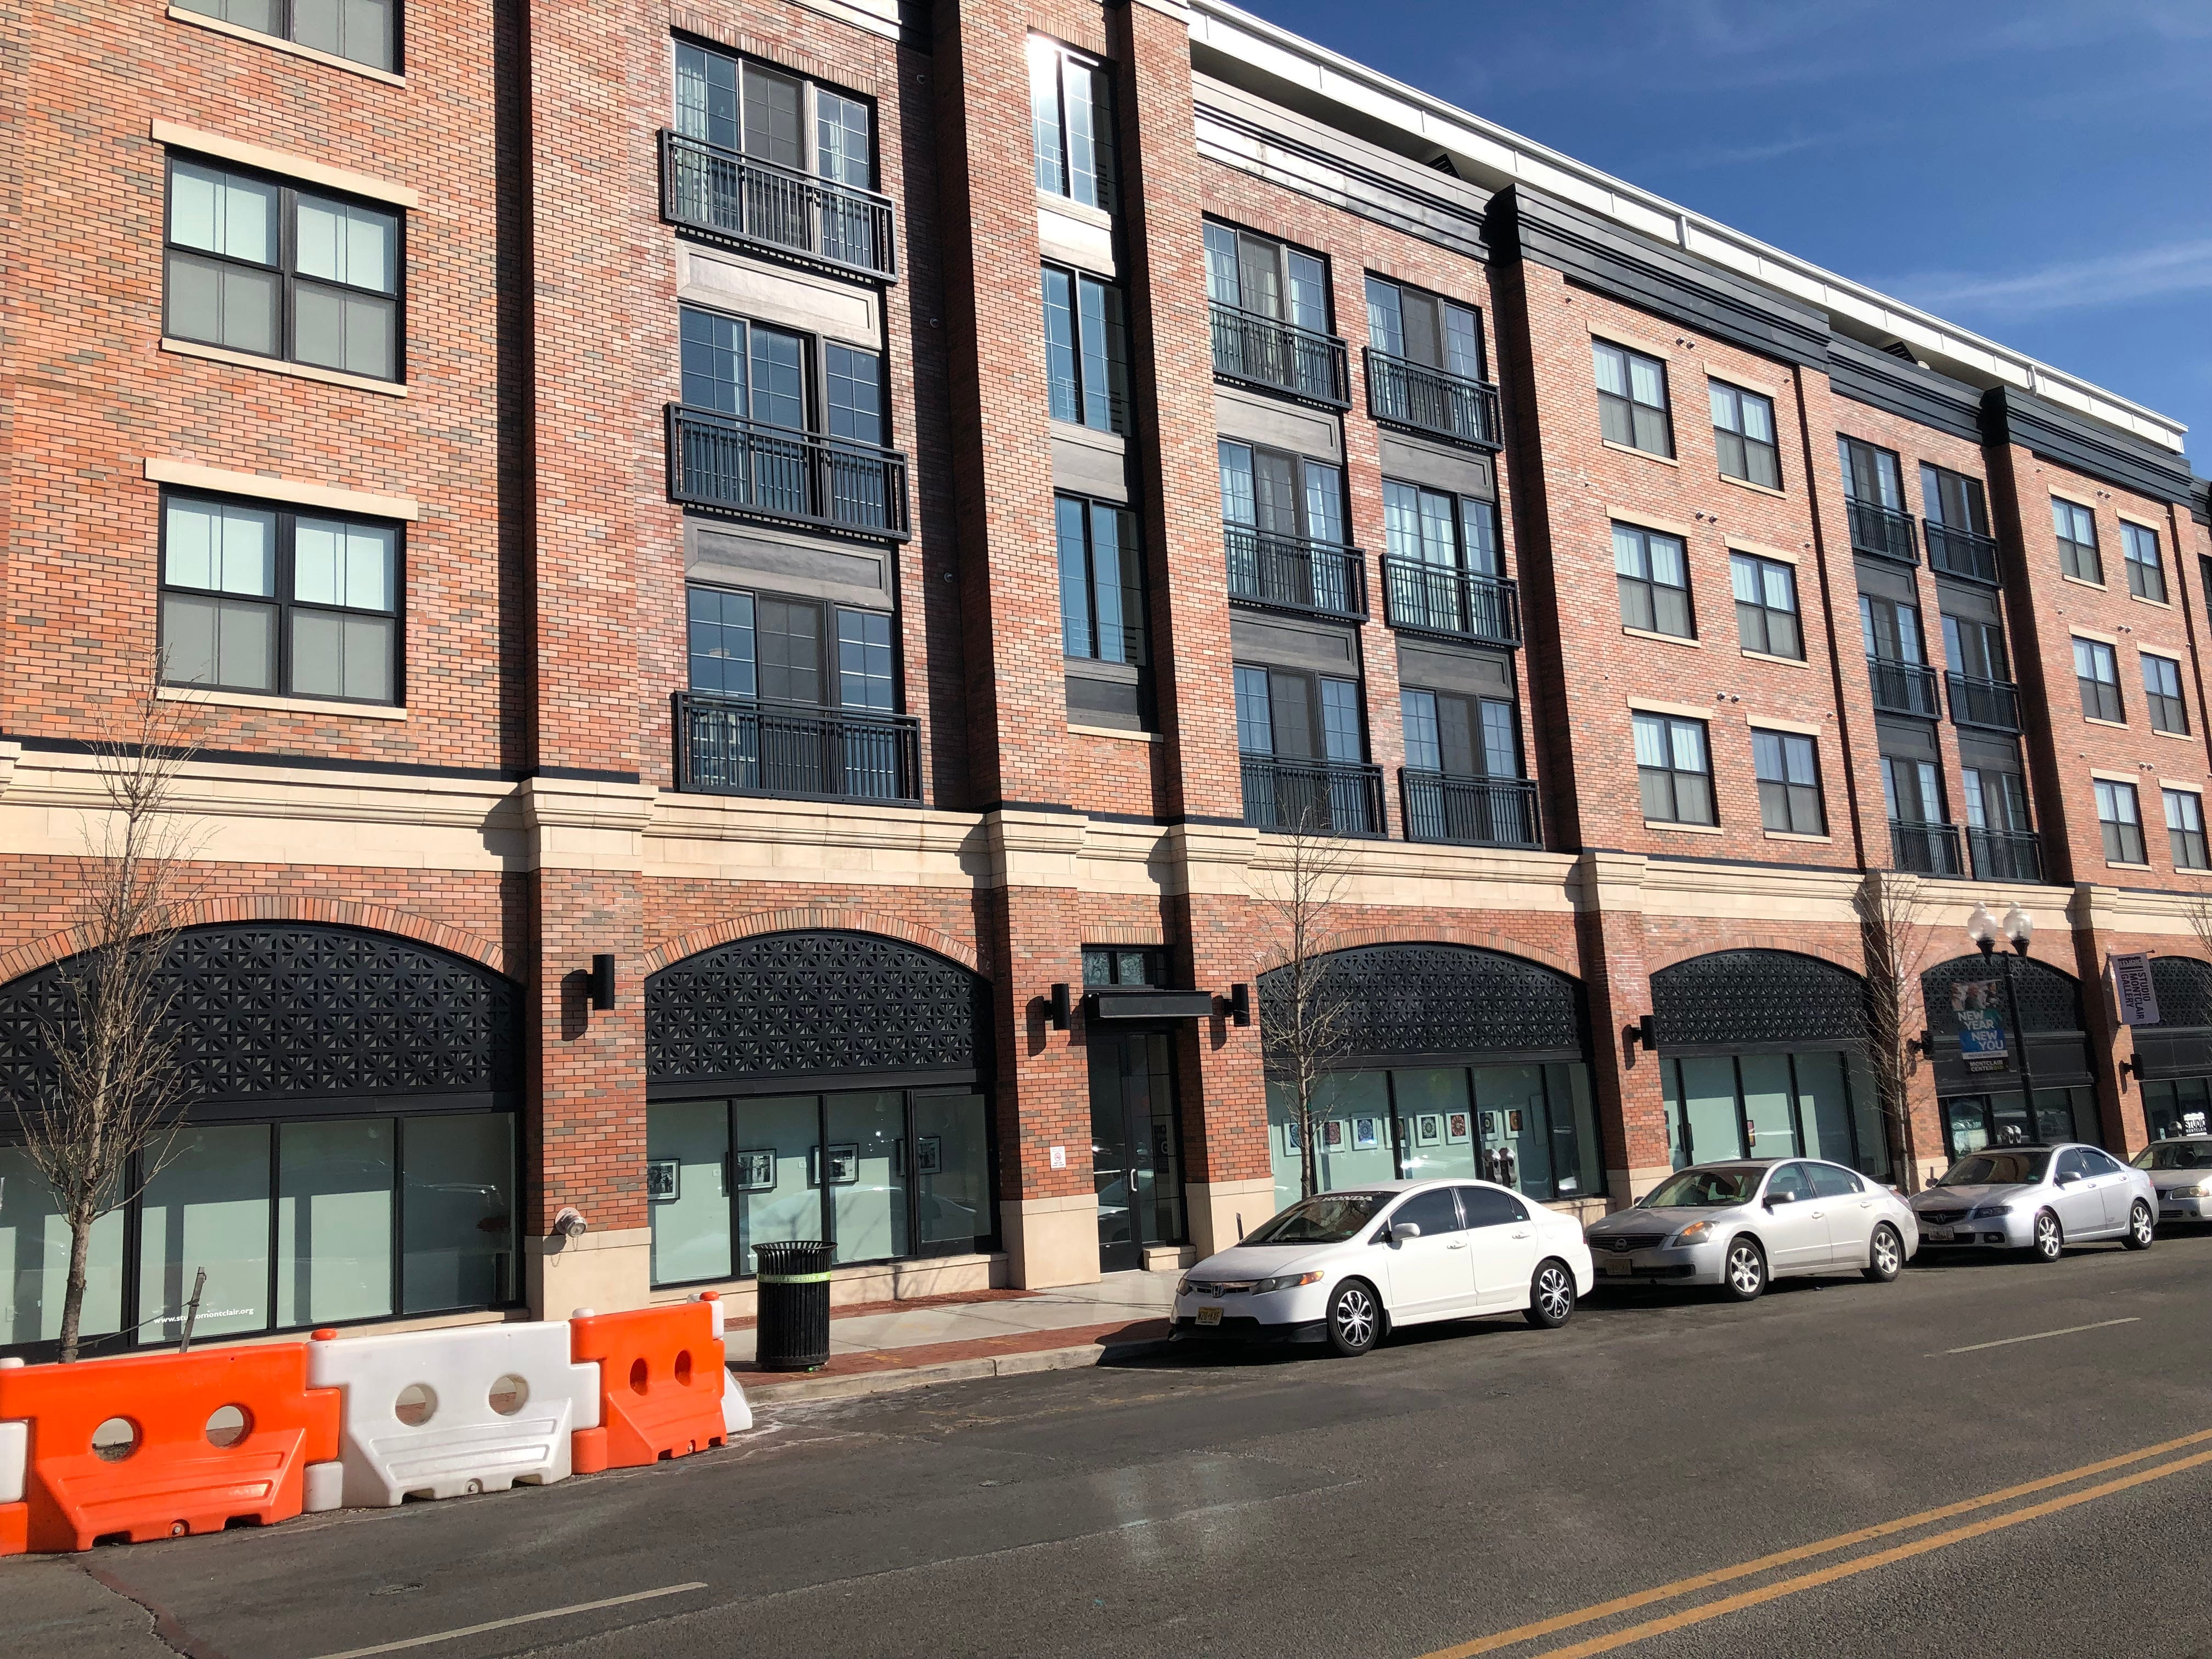 The recently completed Montclairion II on Bloomfield Avenue next to the Vestry and just south of Lackawanna Plaza contains 40 residential units and 1,410 square feet of commercial space. February 2019.